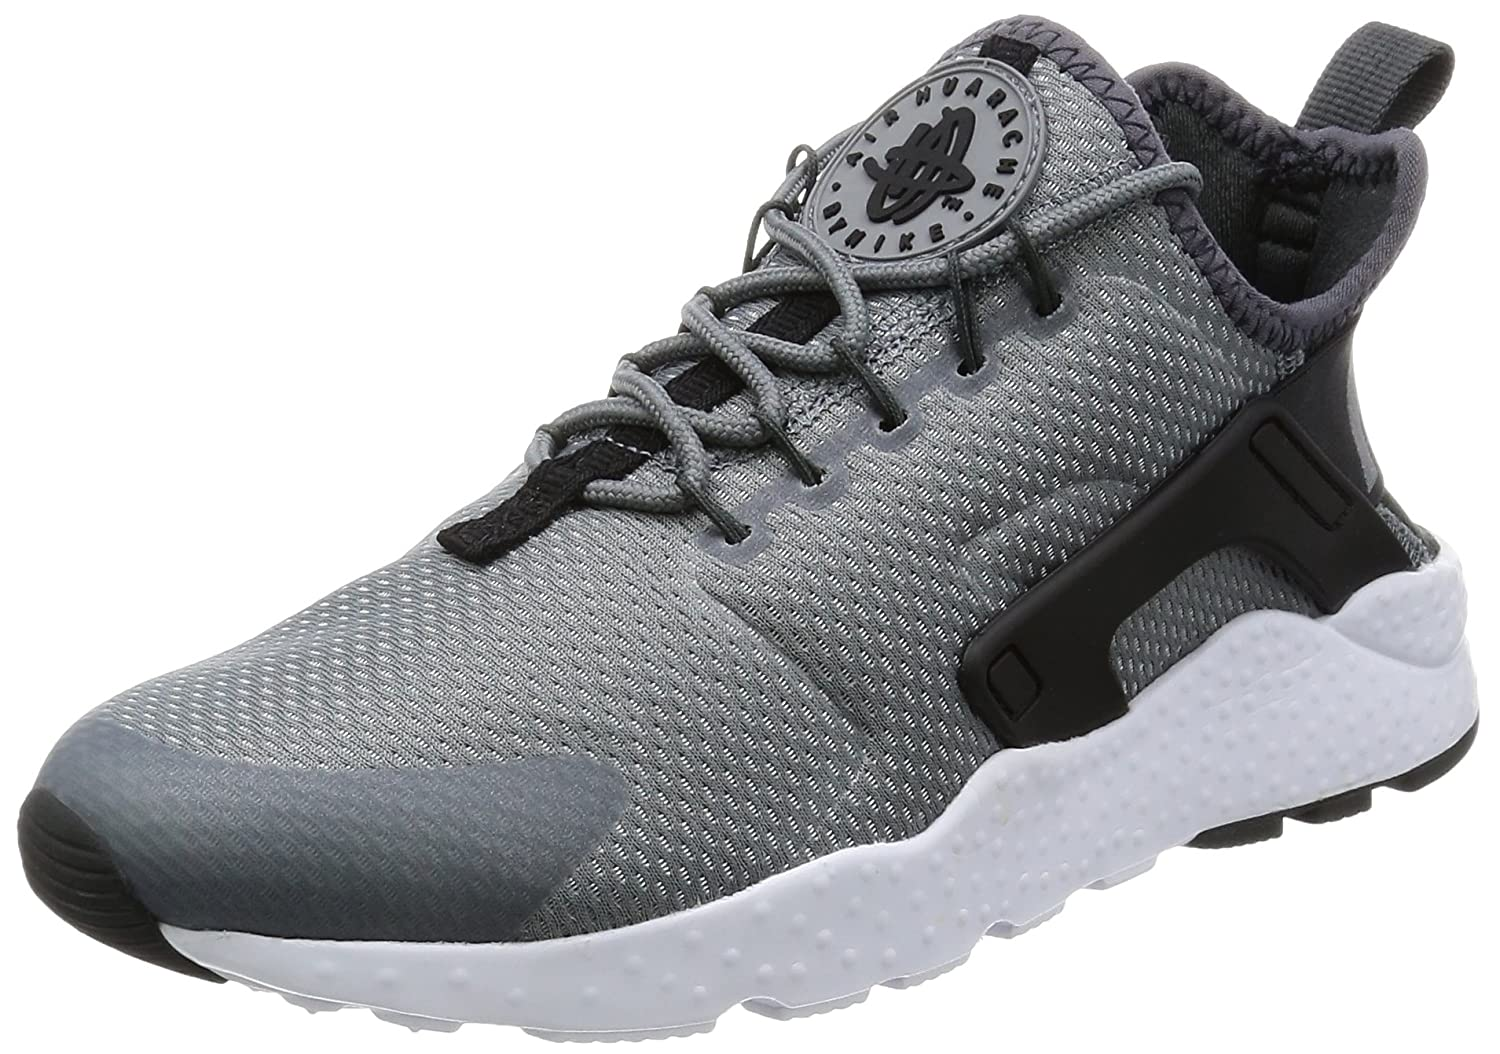 new product 829fc 1d002 Nike Womens W Air Huarache Run Ultra Fitness Shoes Amazon.co.uk Shoes   Bags